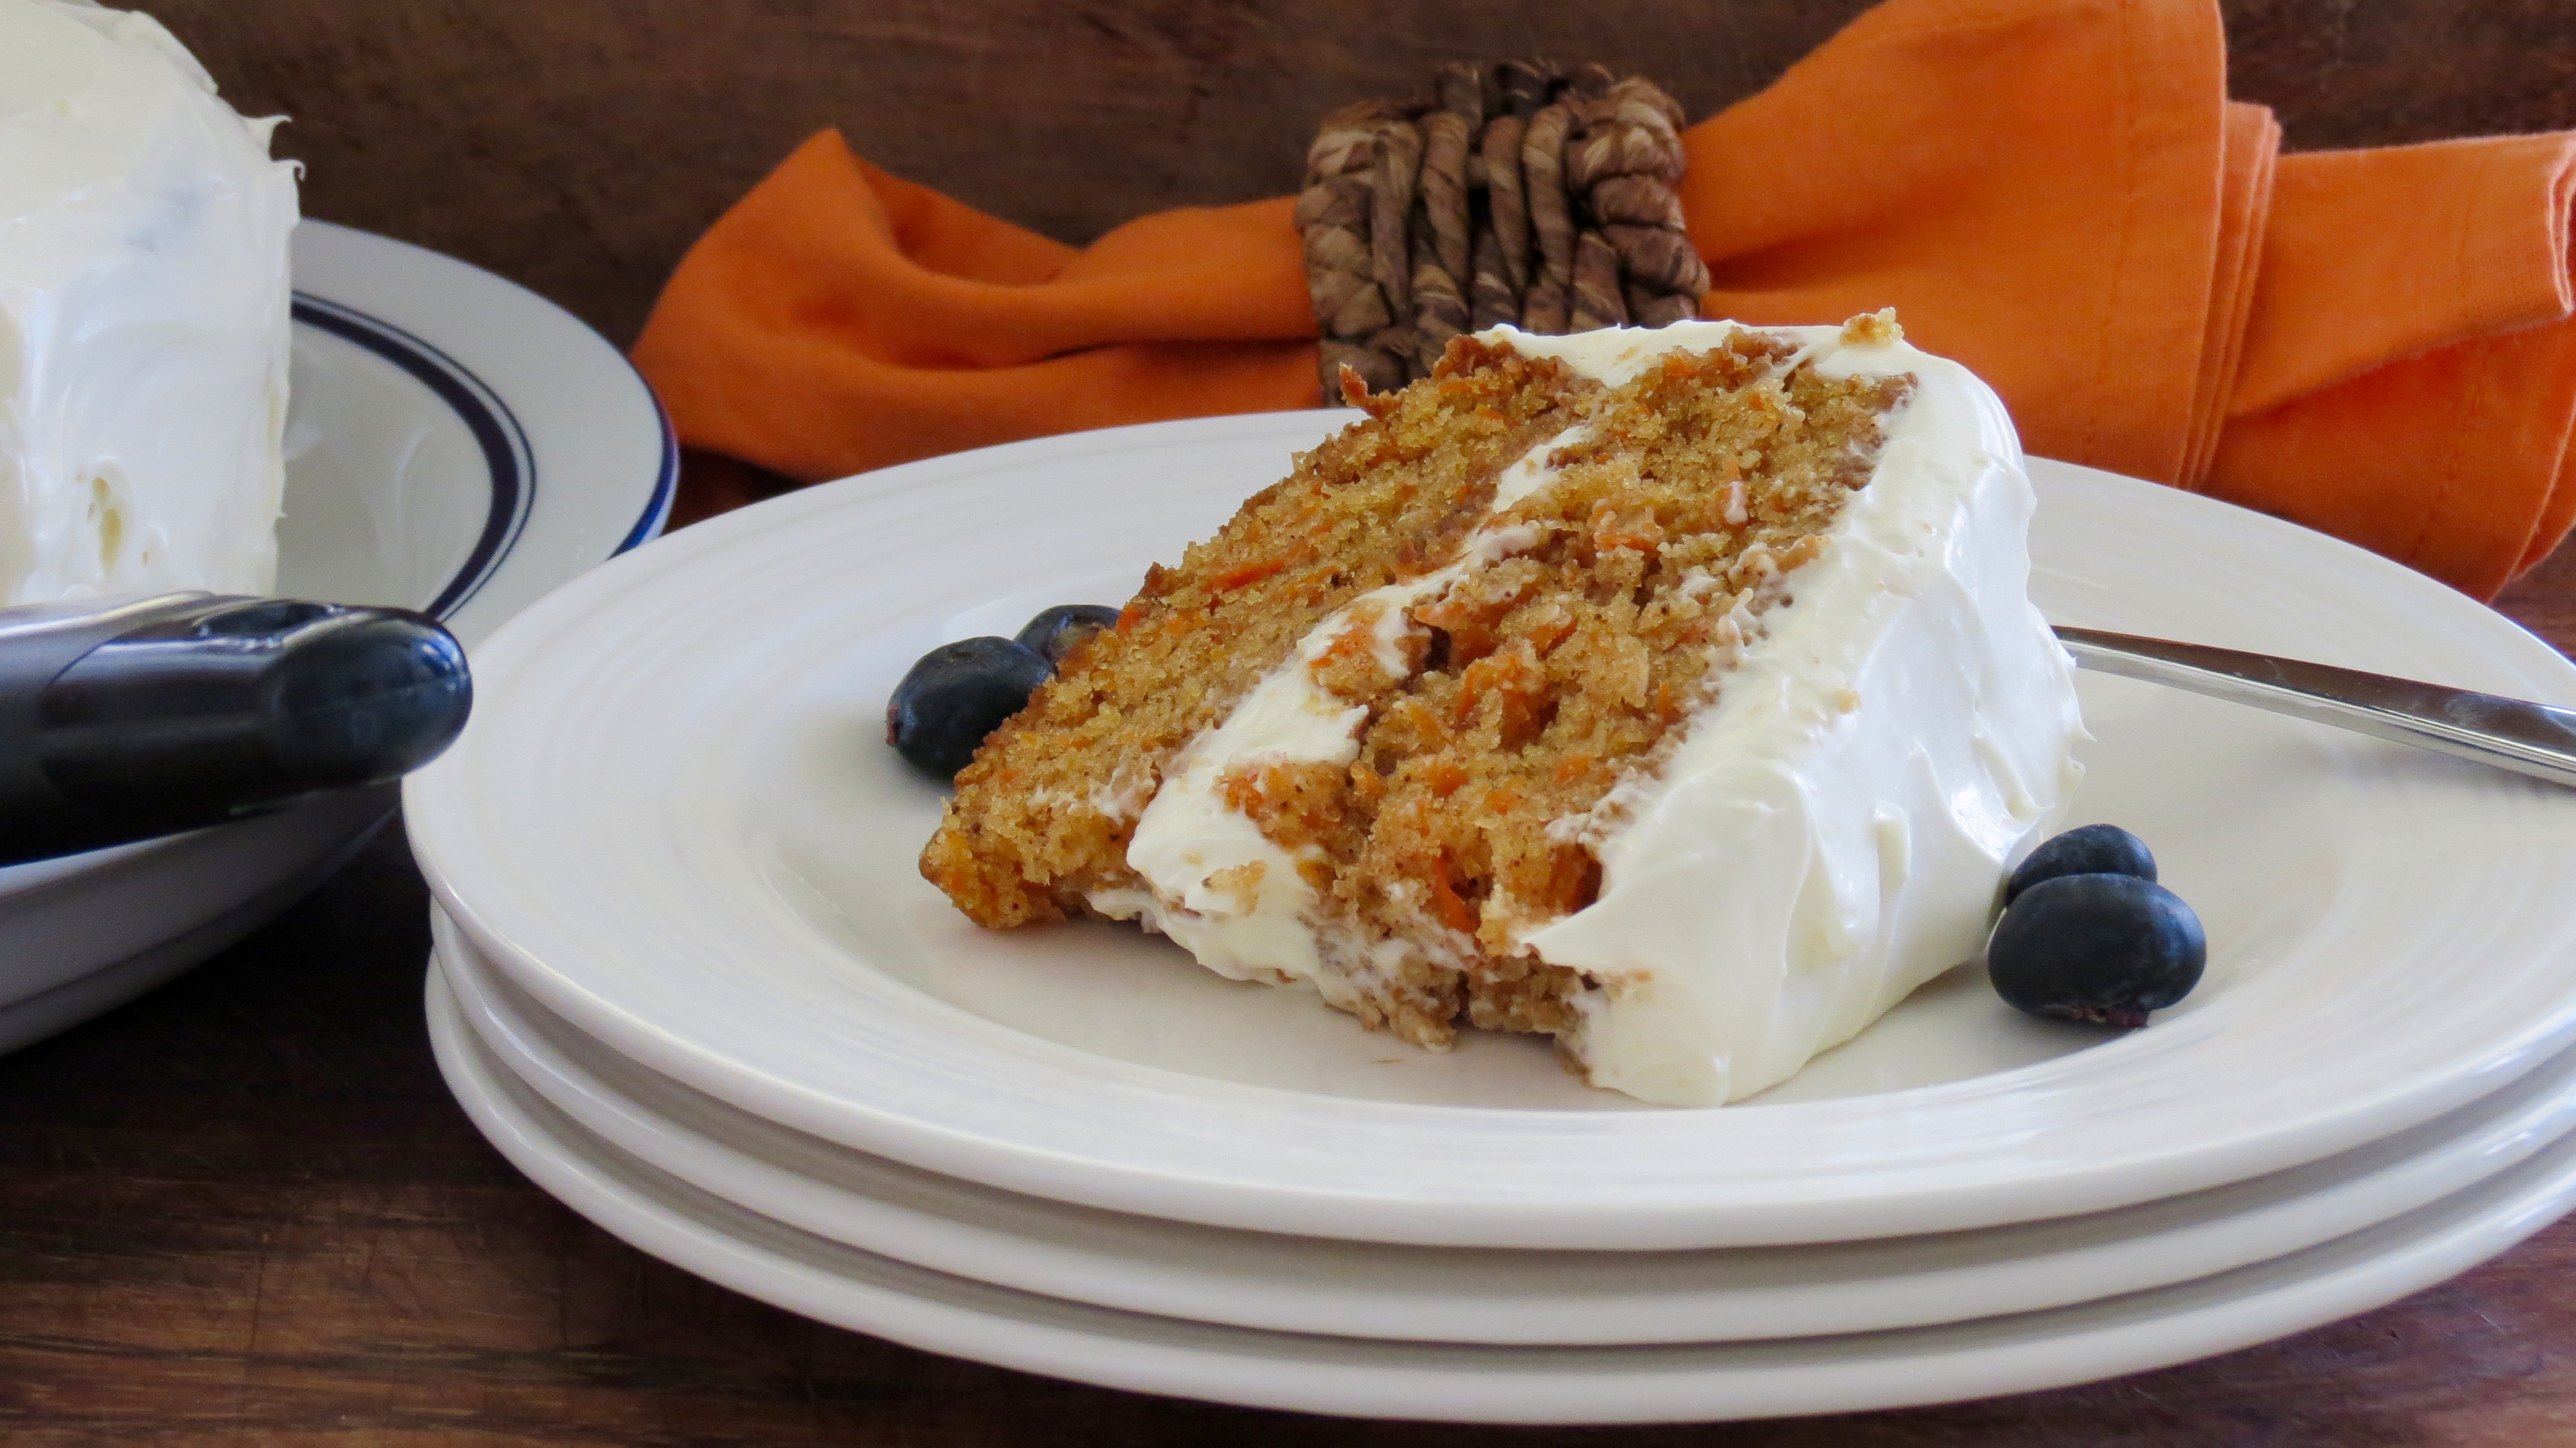 Sour cream coffee cake the frugal chef - Best Carrot Cake Recipe